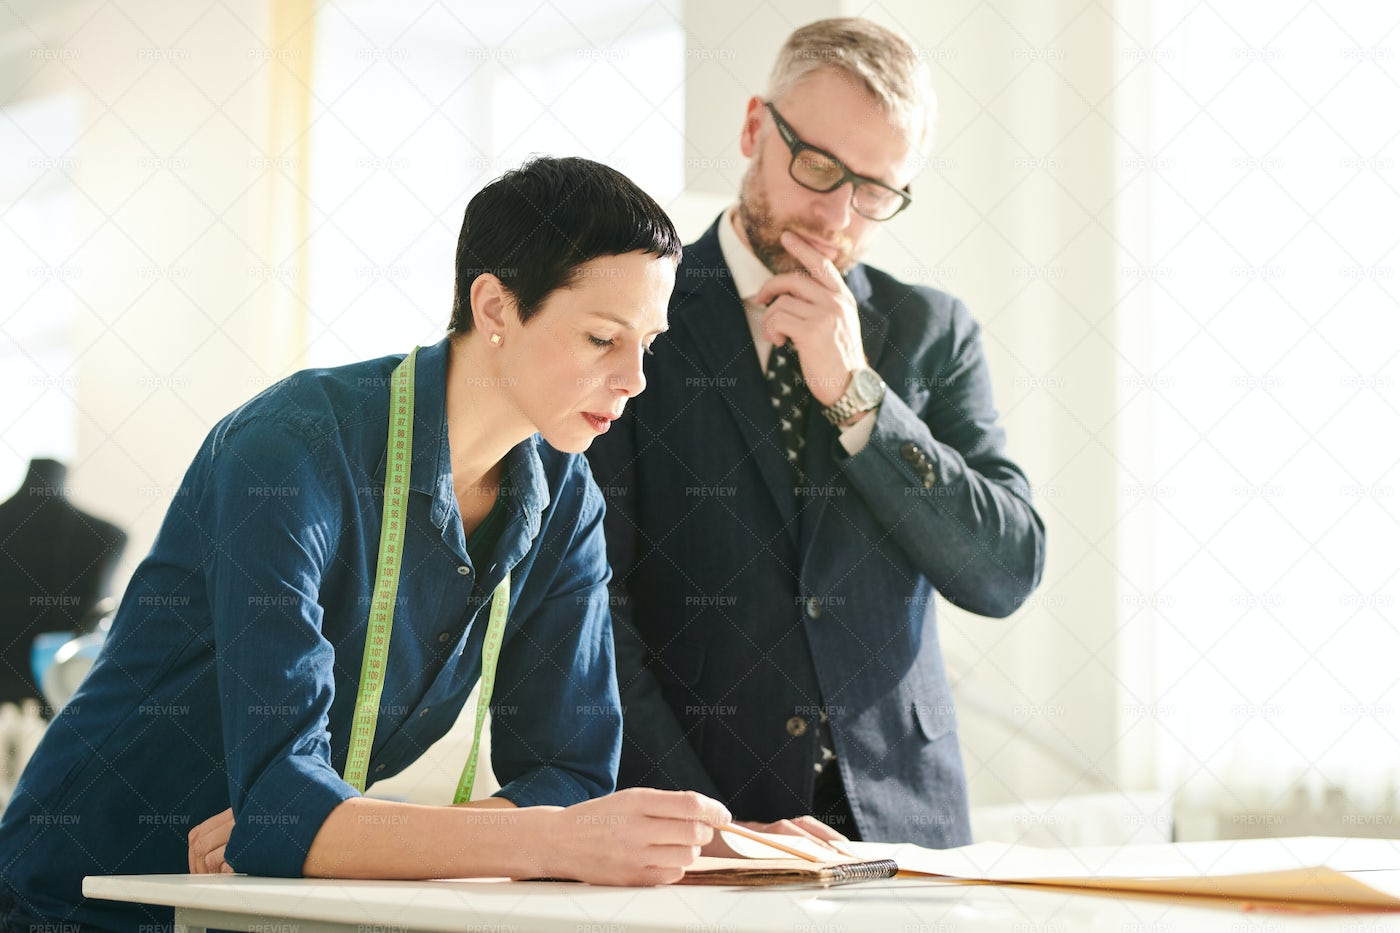 Discussing Sketch: Stock Photos